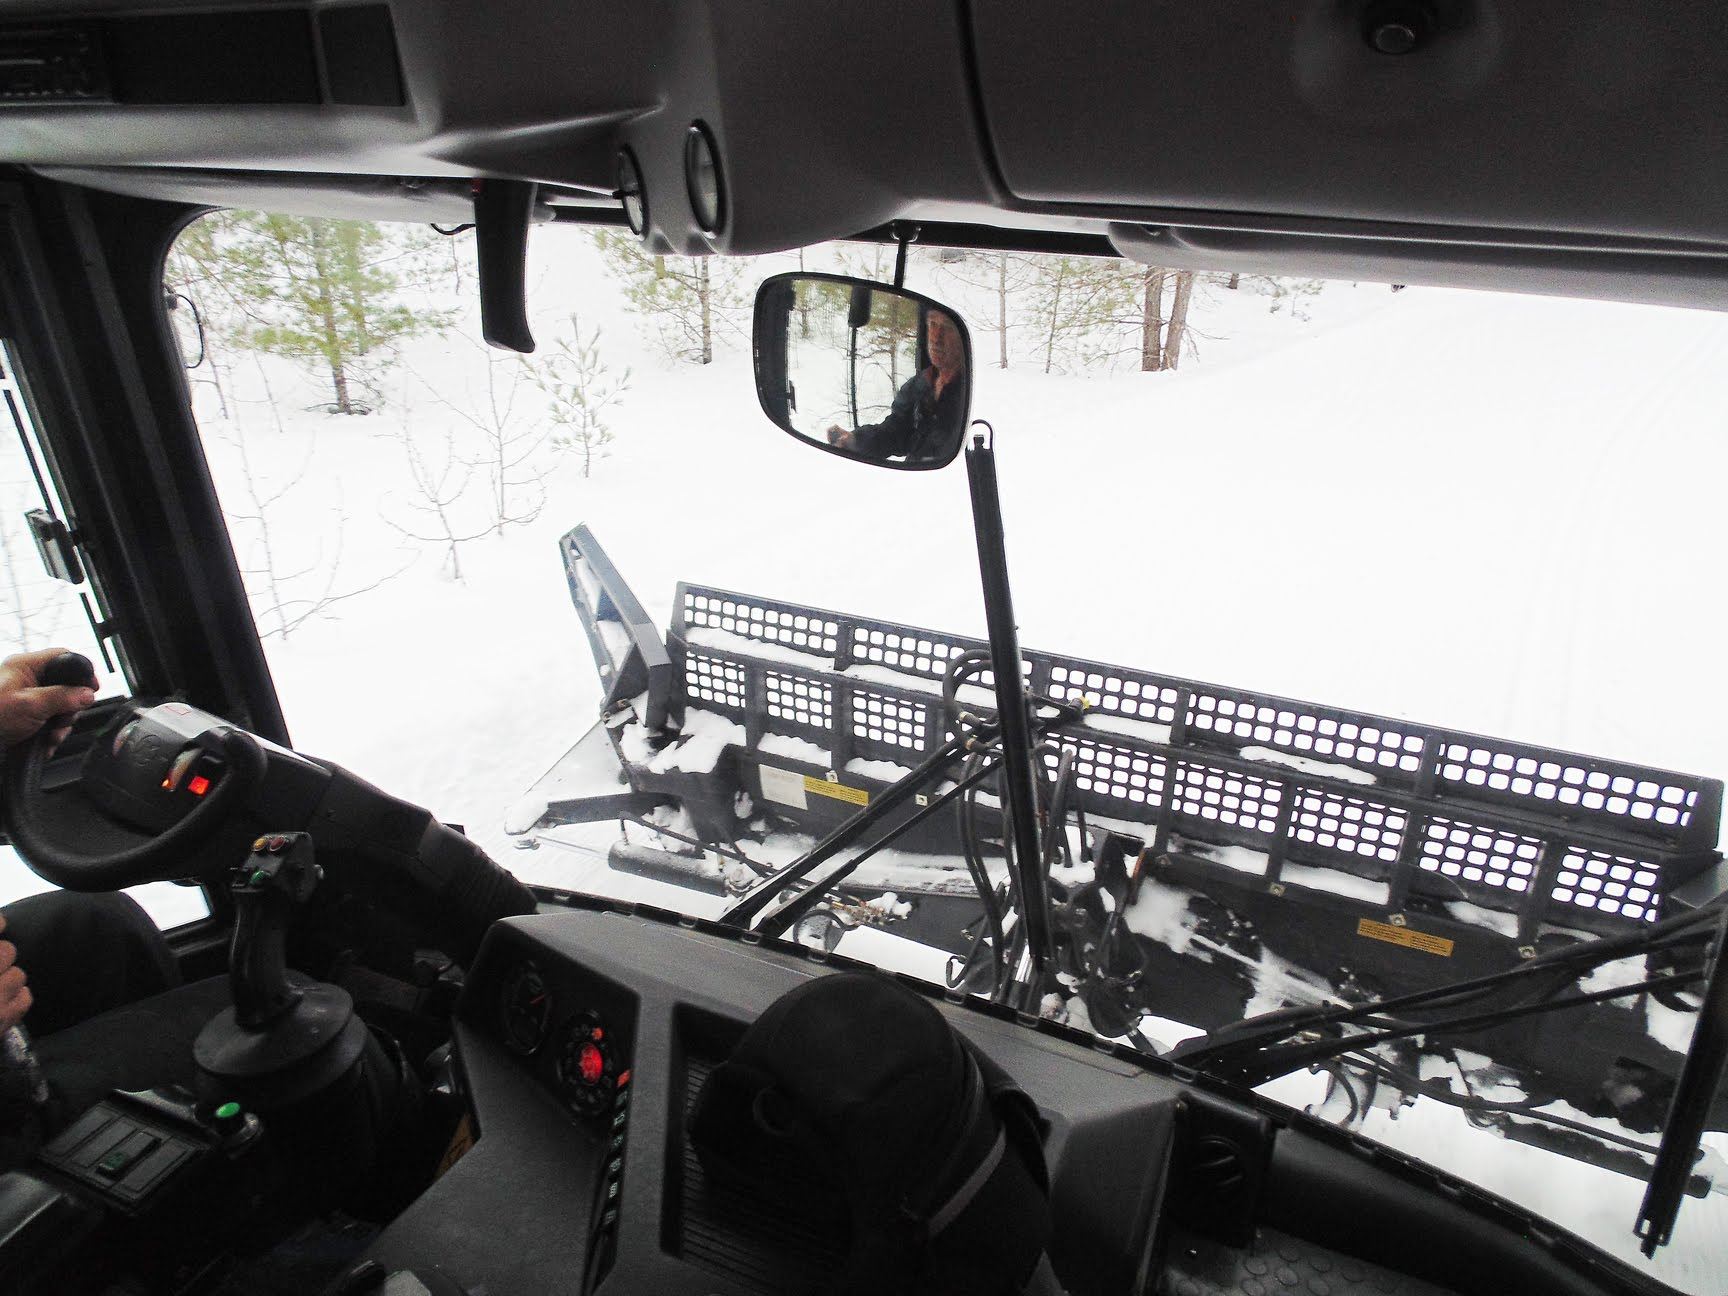 Cab of PistenBully Groomer